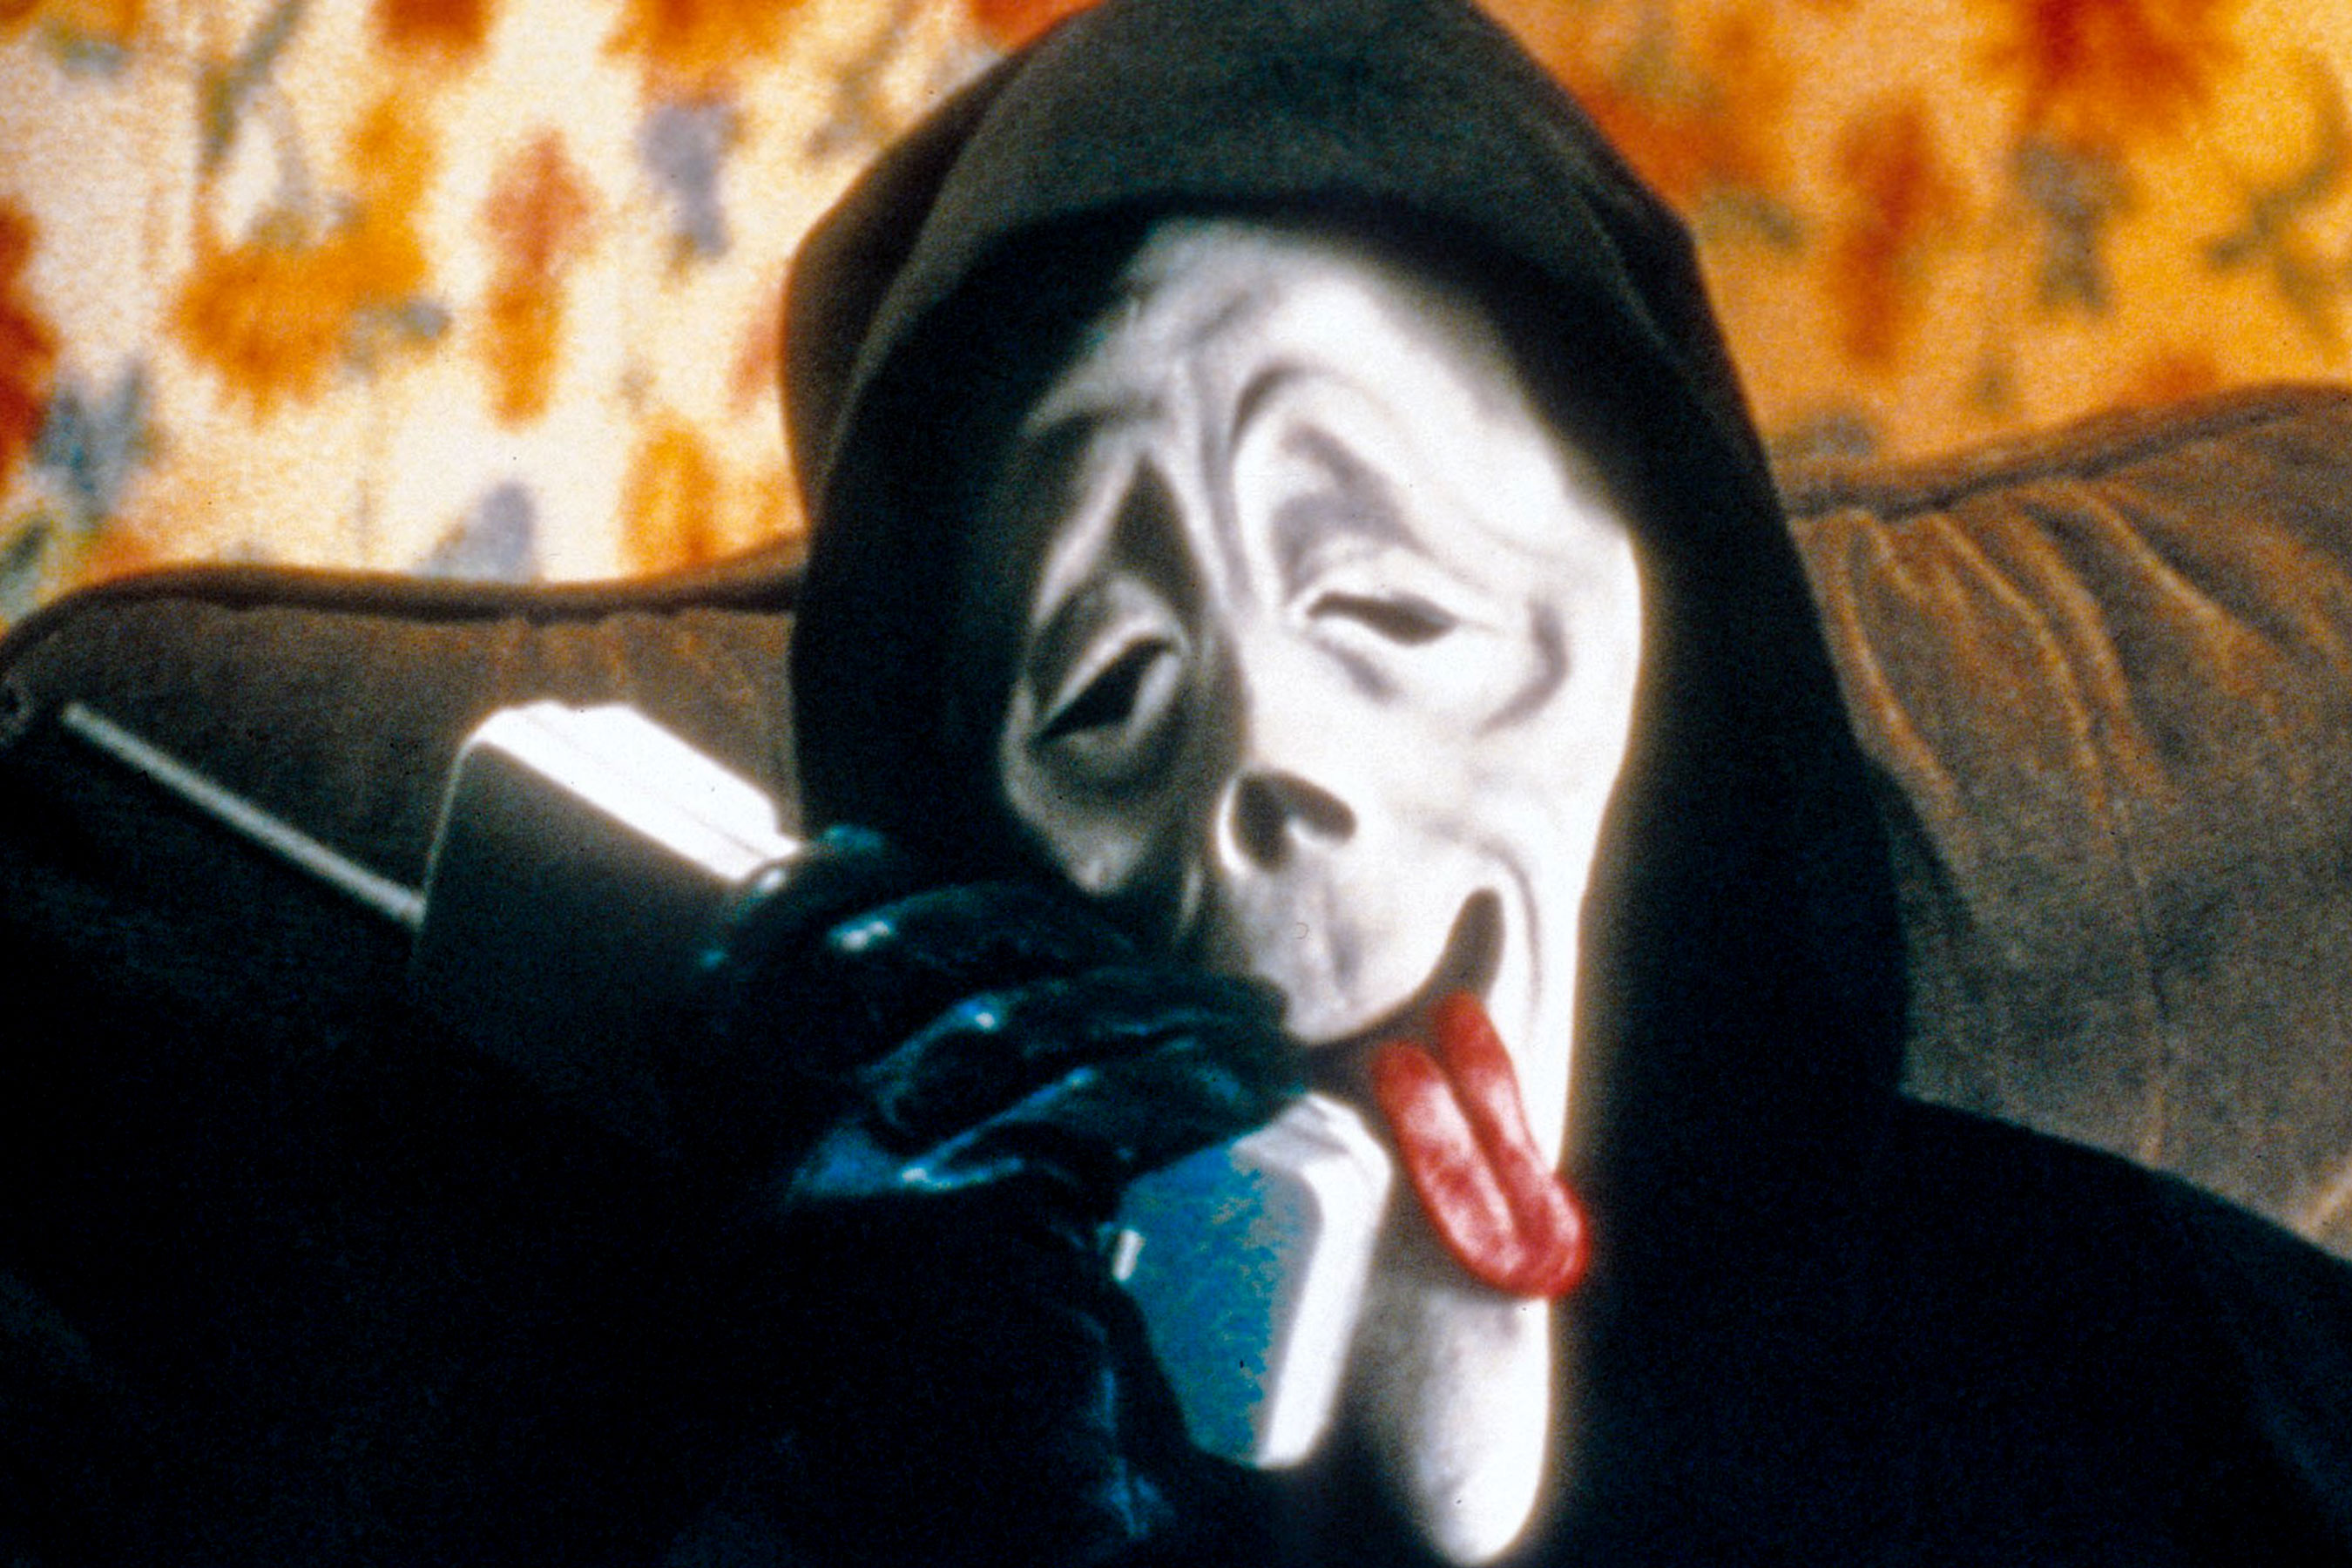 Parodying Scream's Ghost Face in Scary Movie (2000)